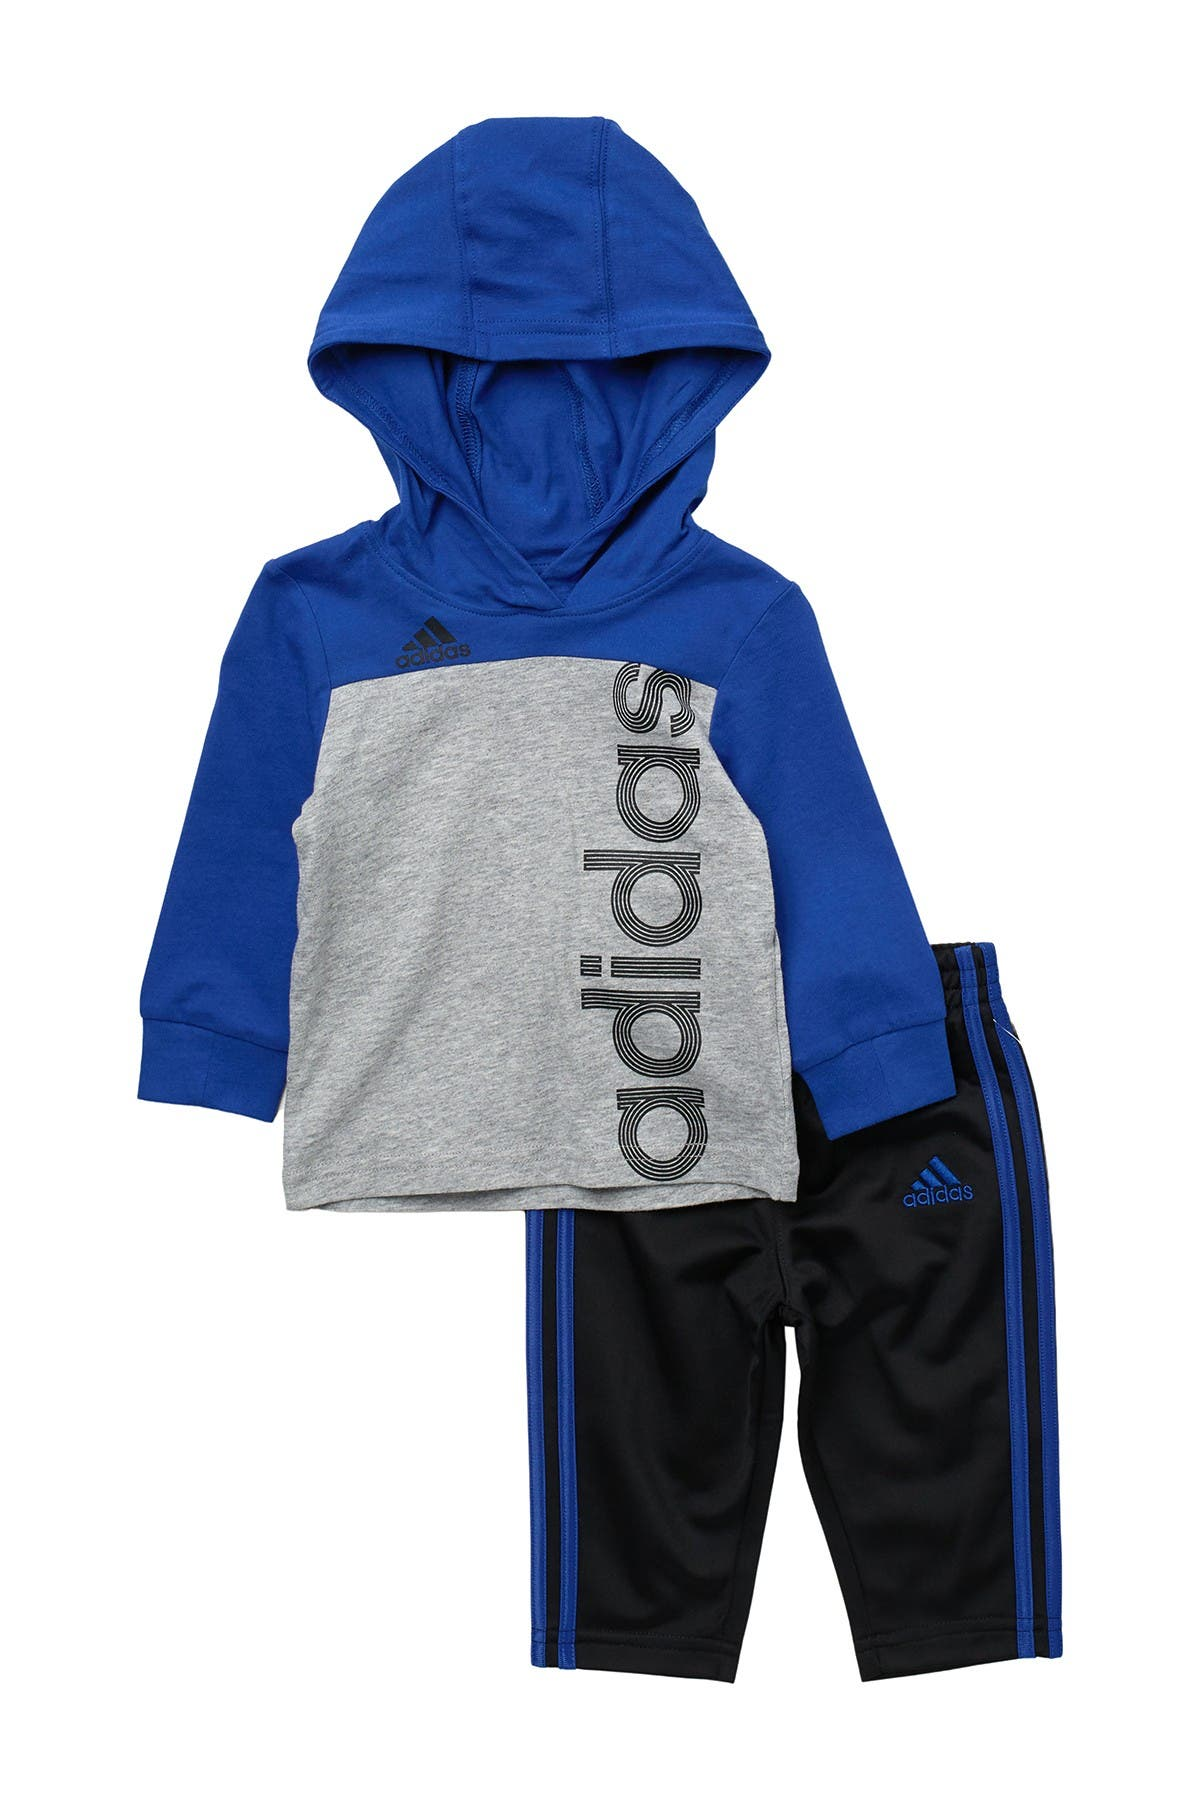 Image of adidas Colorblock Hooded Top & Pants Set